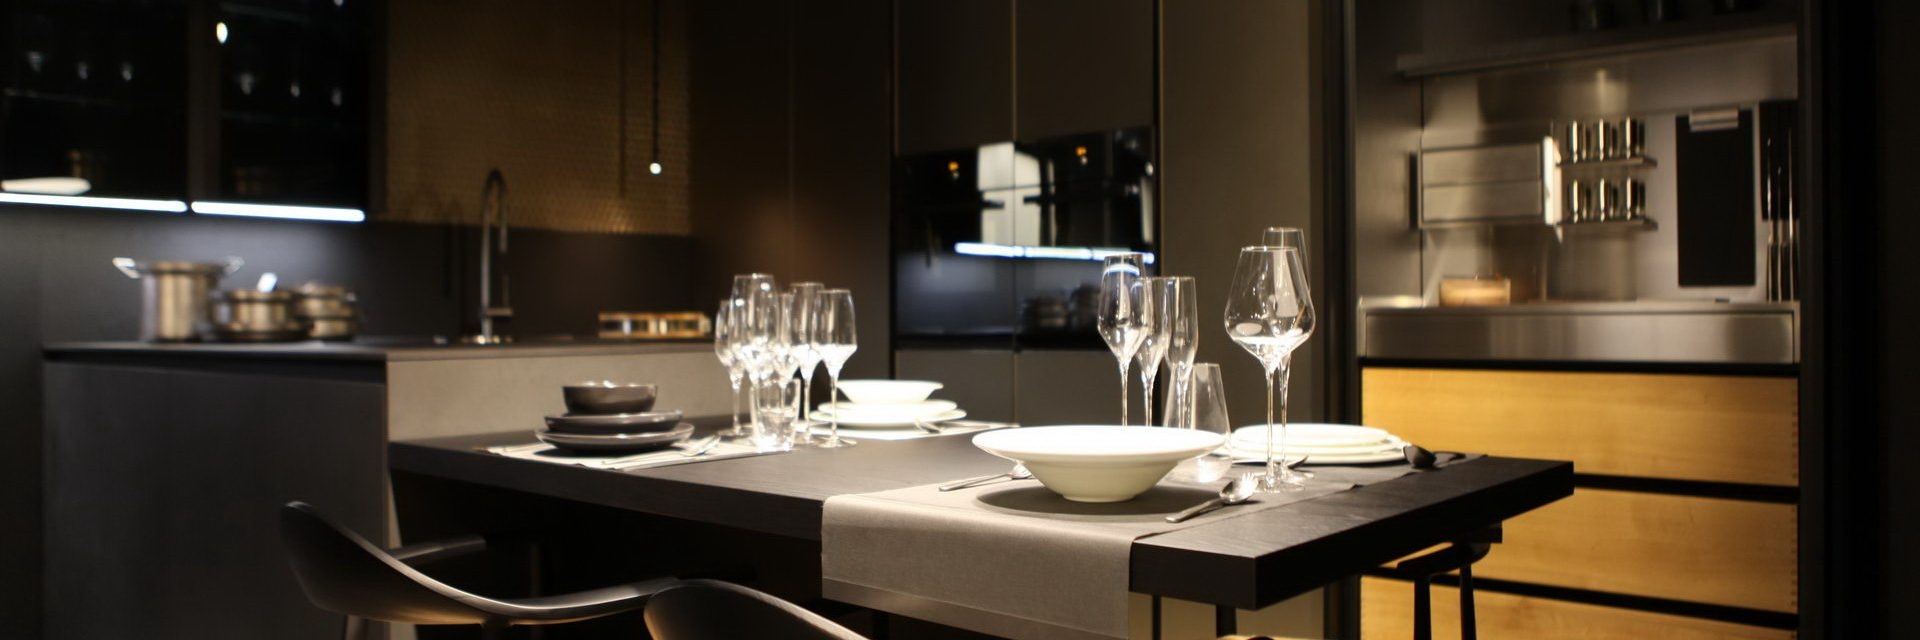 Cucine Moderne di Design Made in Italy - Binova Milano - Via ...